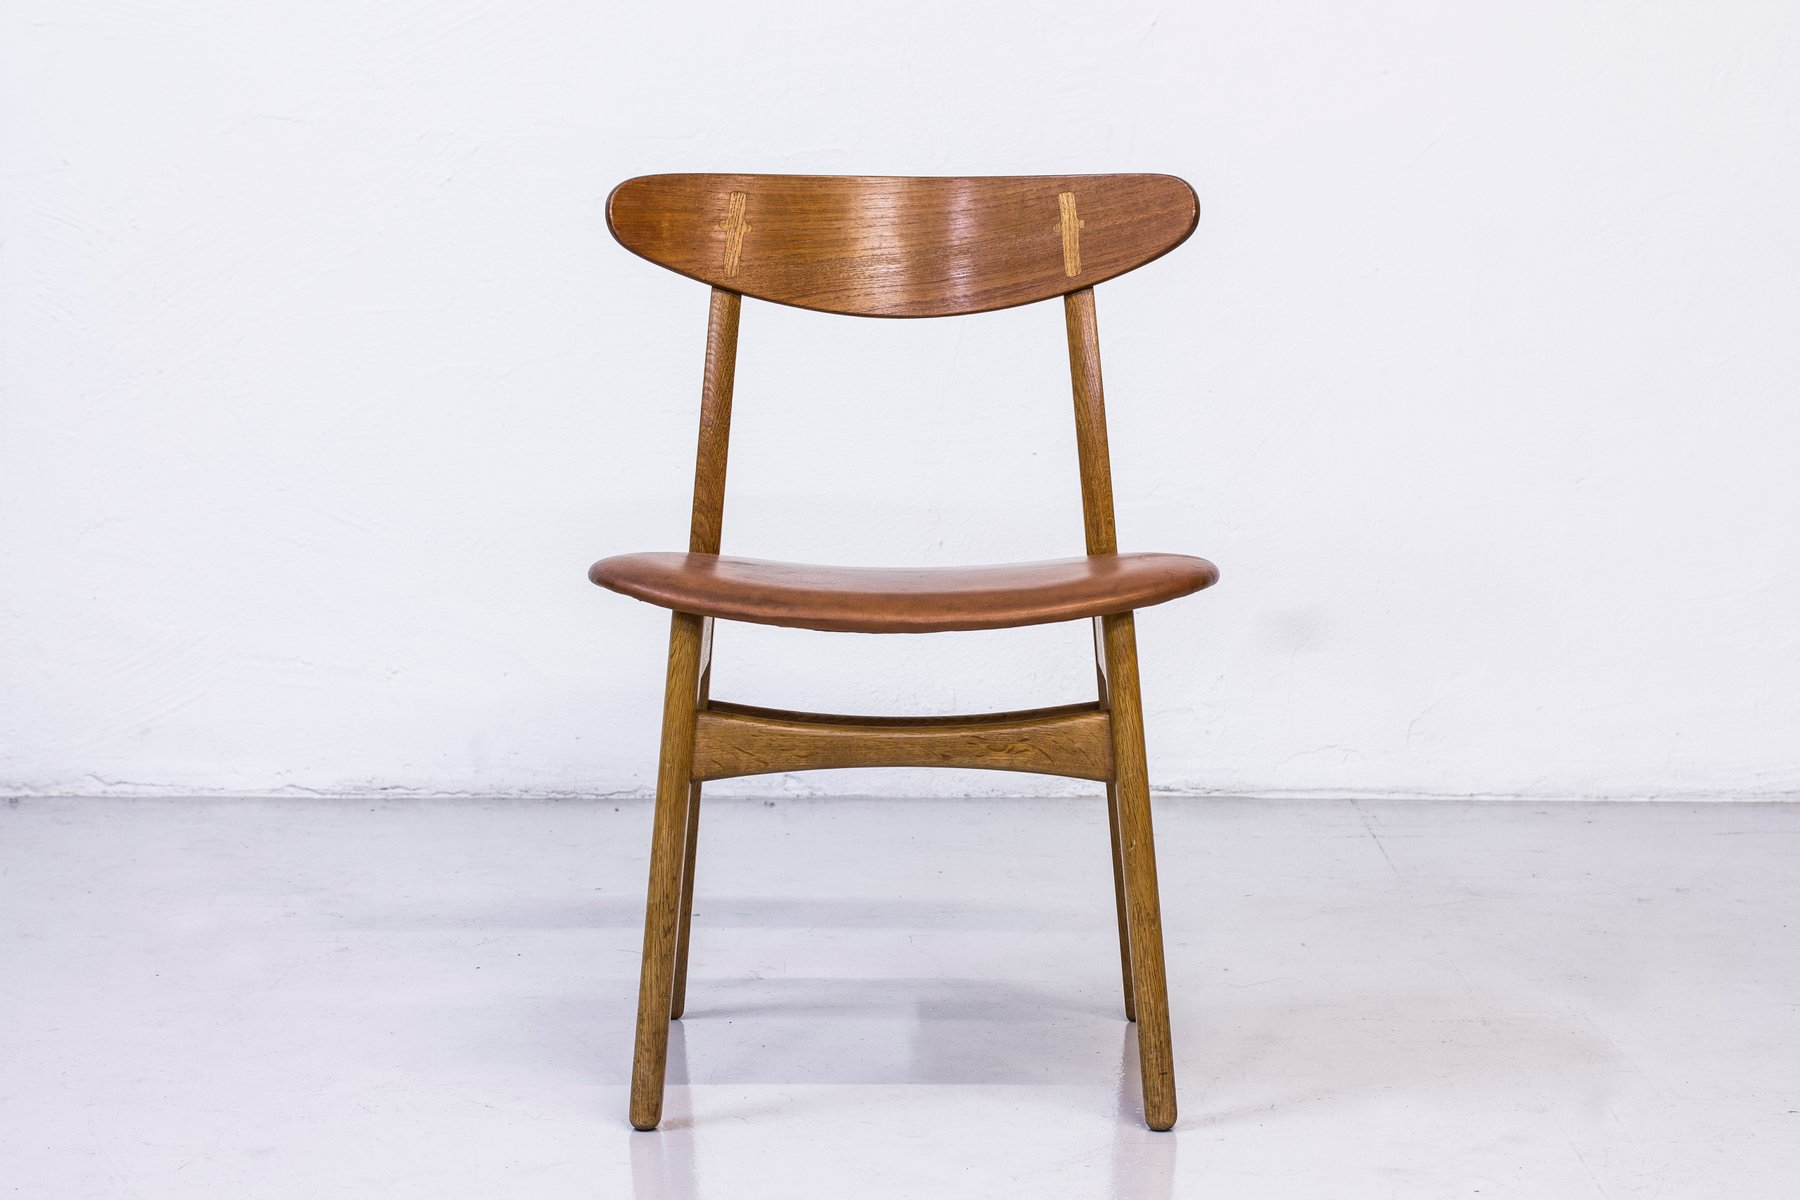 CH 30 Dining Chairs by Hans J Wegner for Carl Hansen & S¸n 1950s